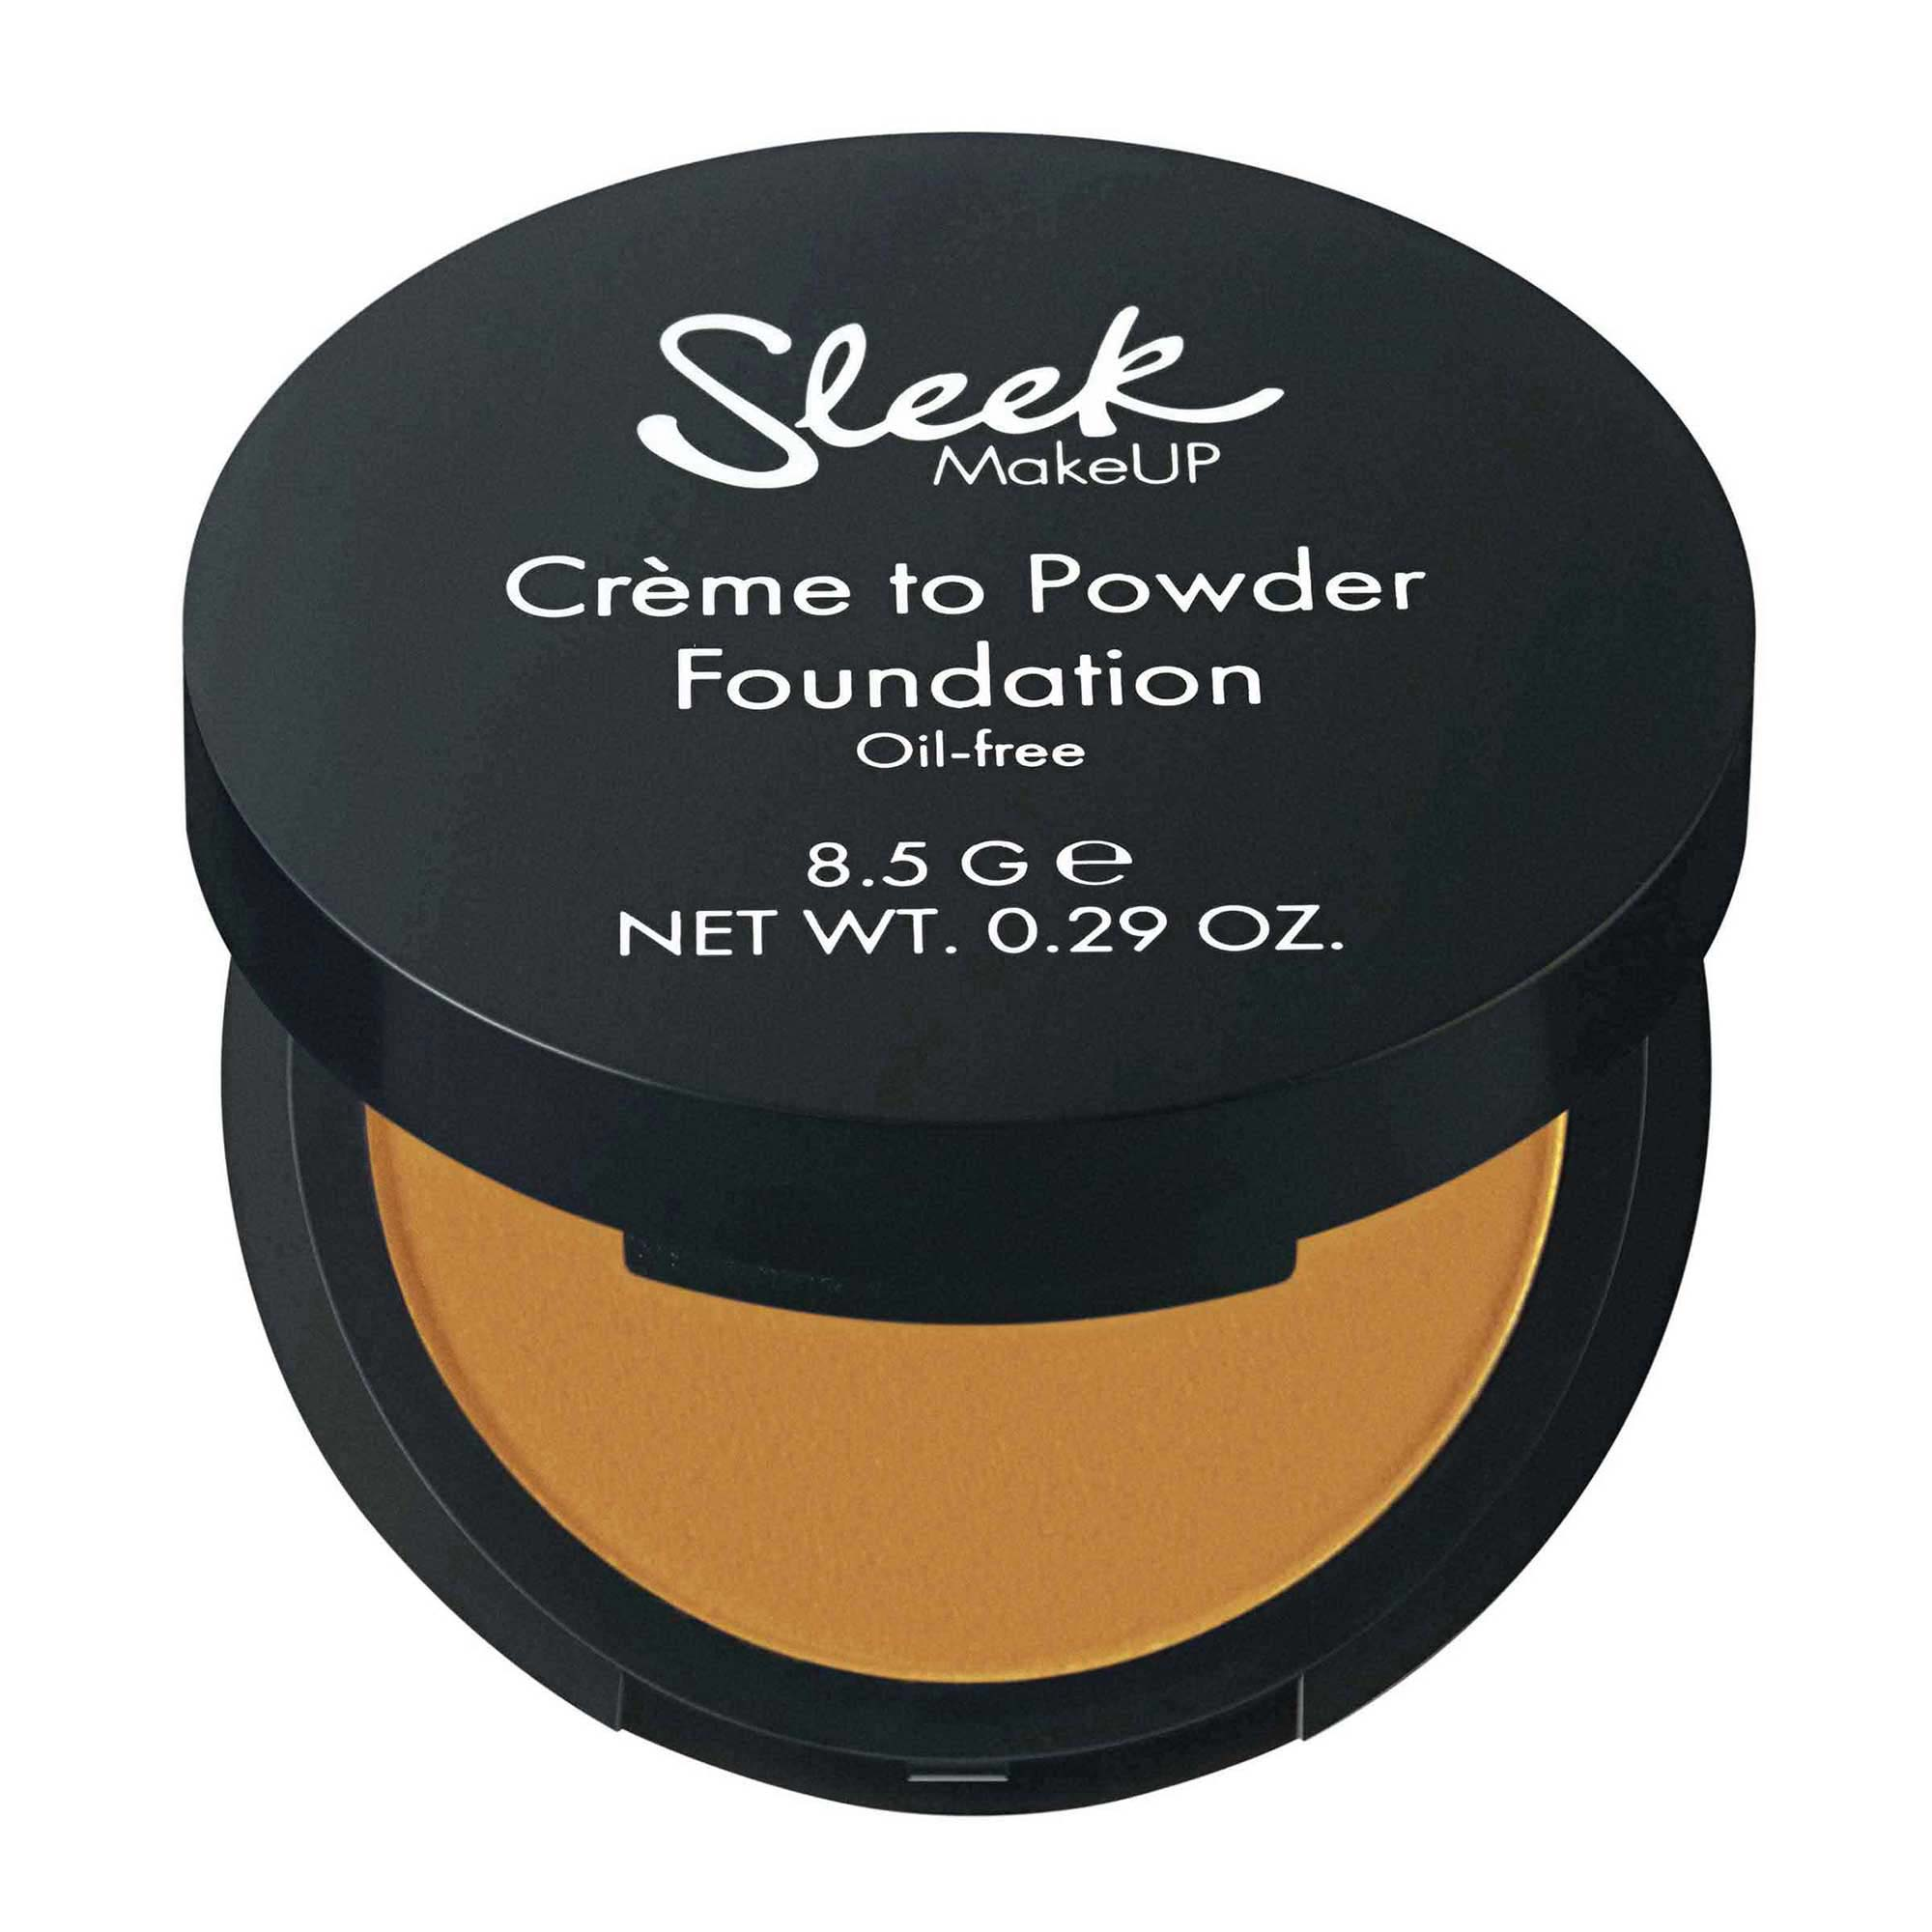 Crème to Powder Foundation C2P11